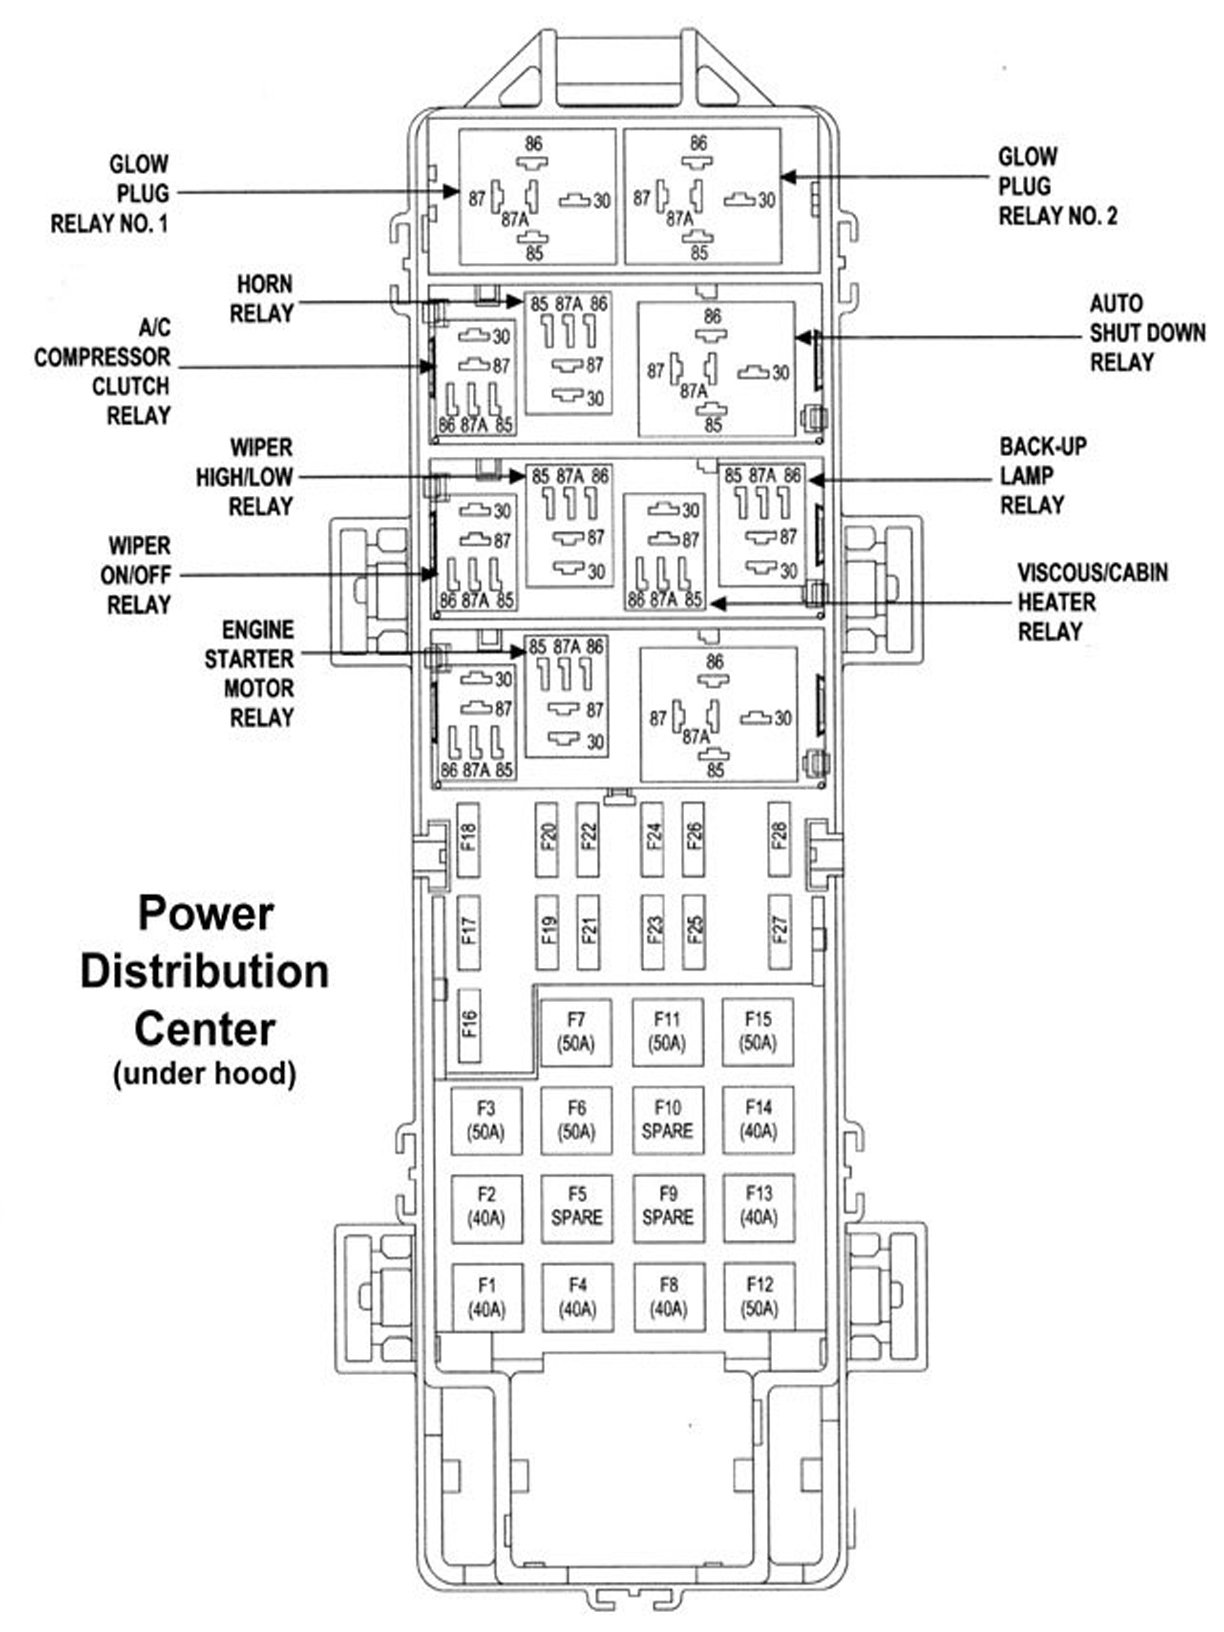 Jeep Grand Cherokee 1999 2004 Fuse Box Diagram 397760 on fuse box location 1996 jeep cherokee sport